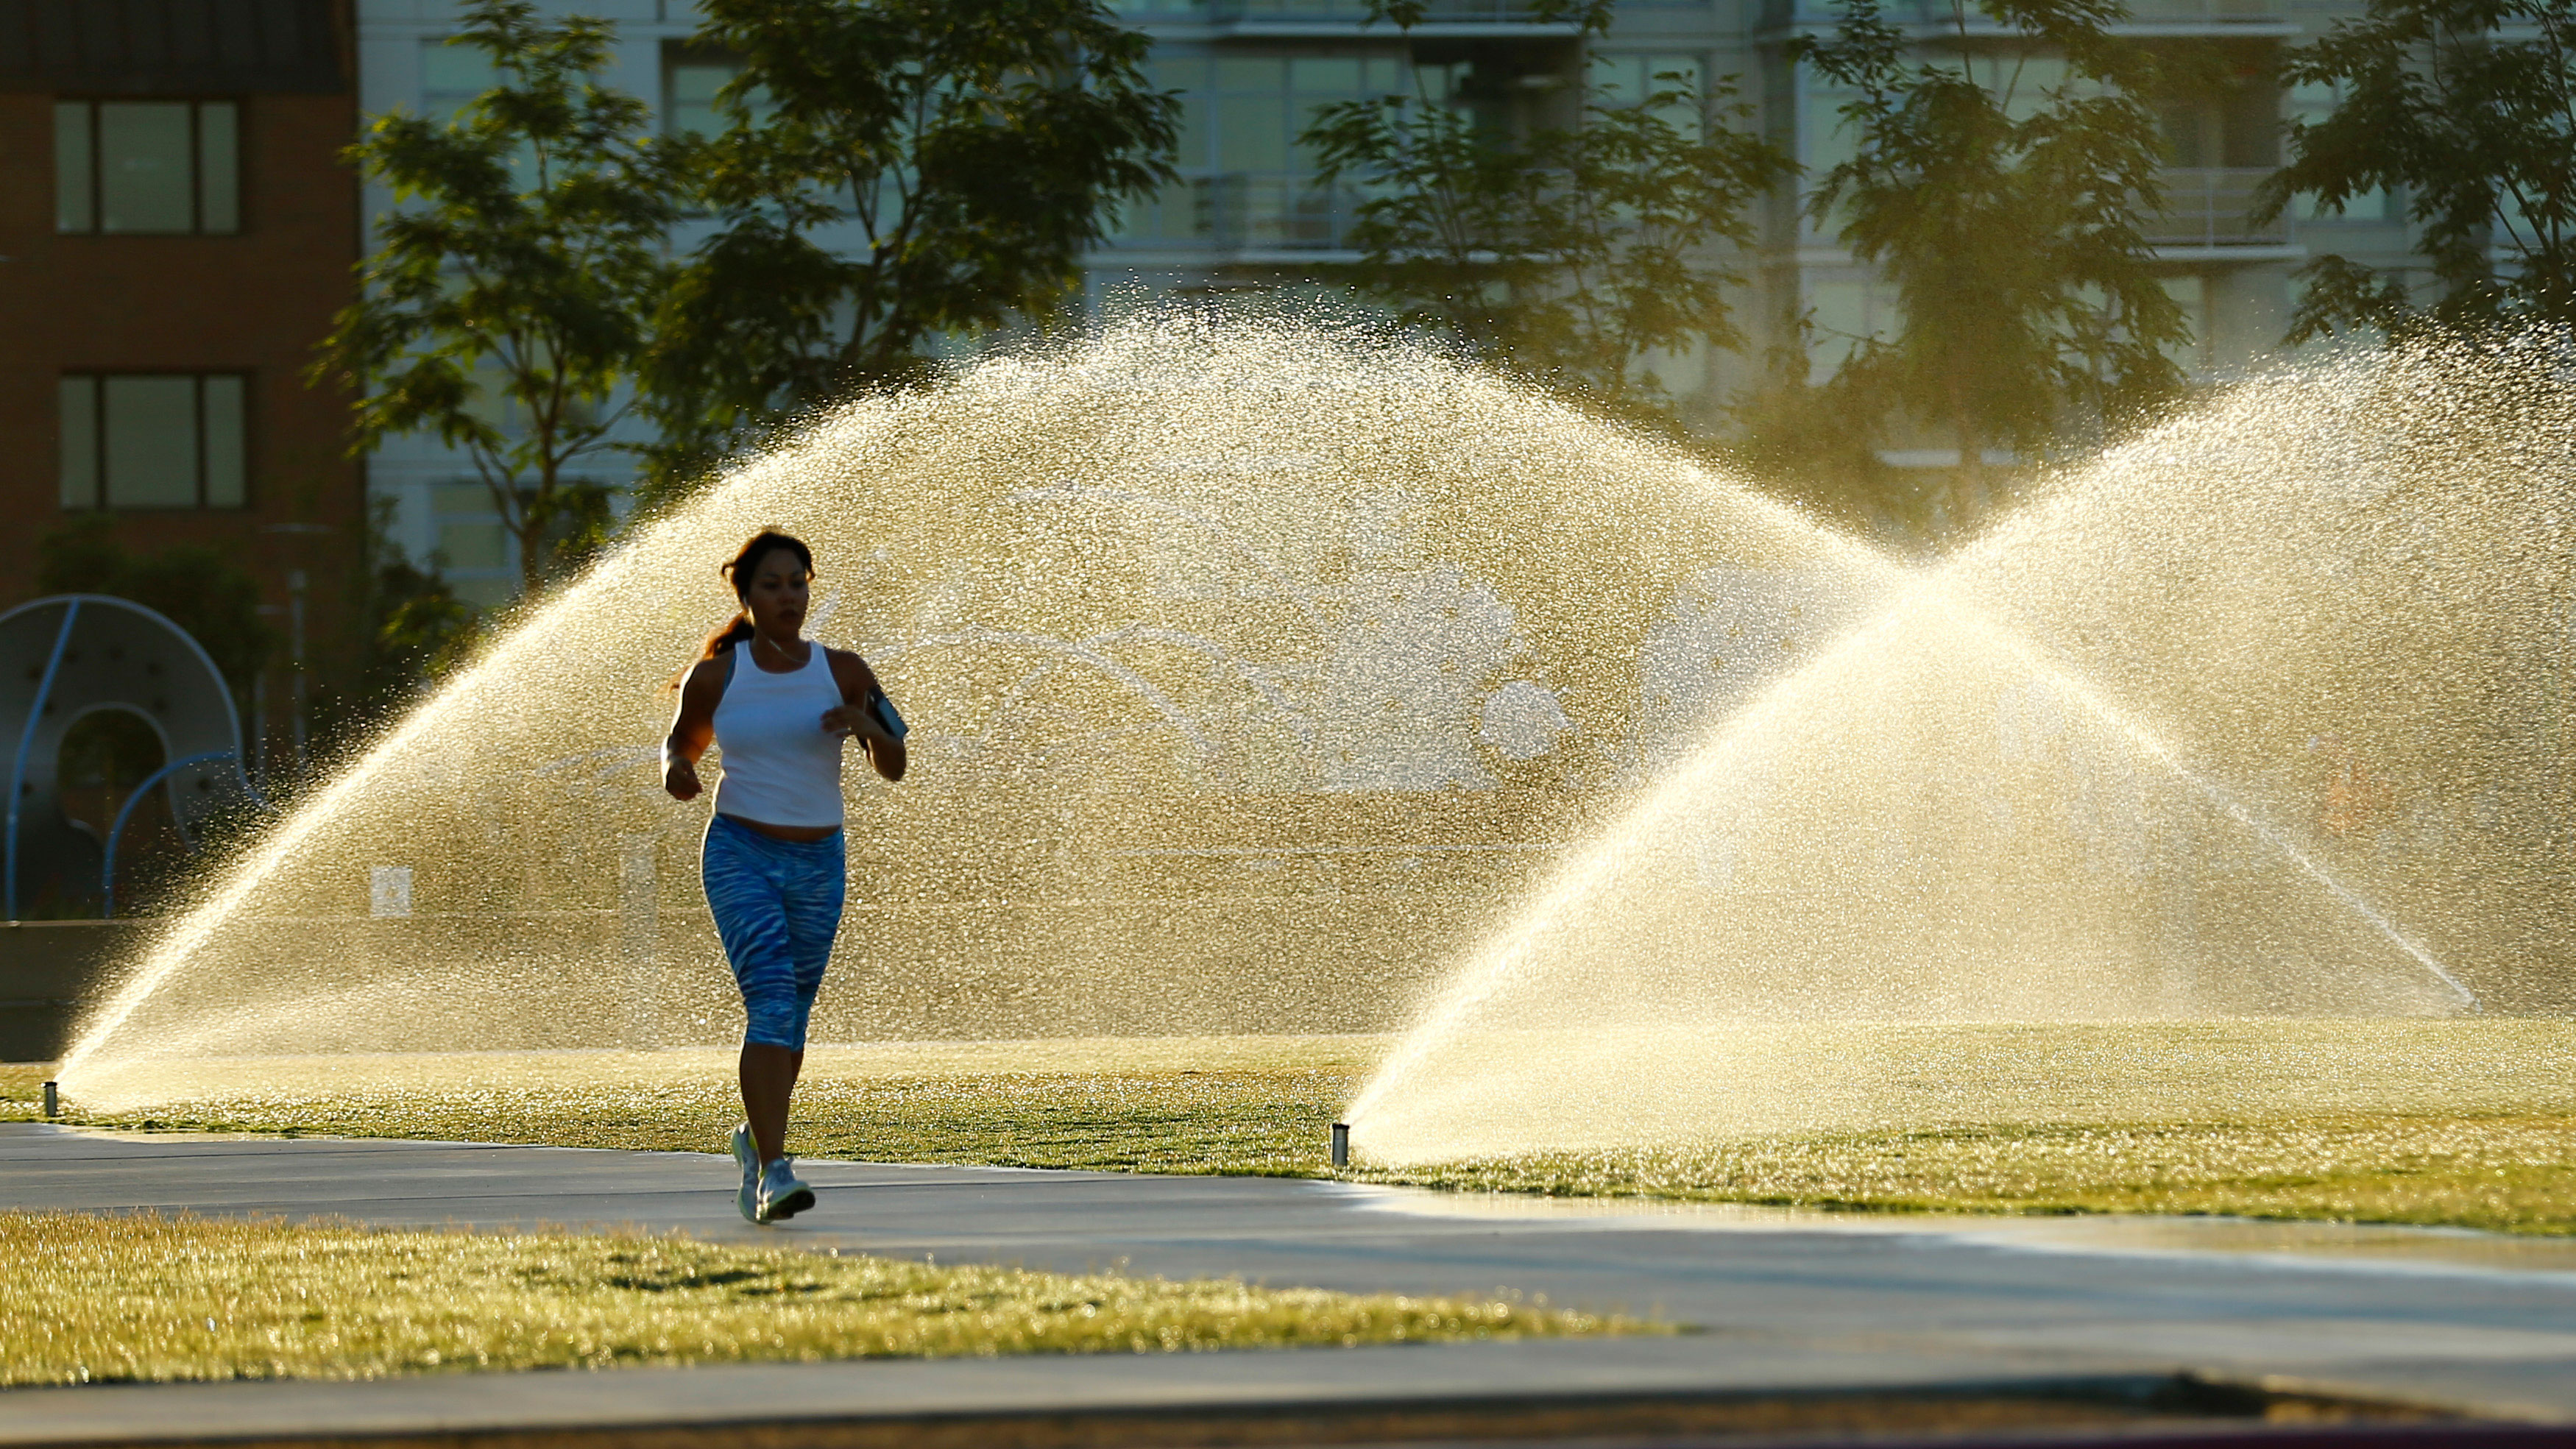 Sprinklers spray water onto grass as a jogger runs through a city park in San Diego, California